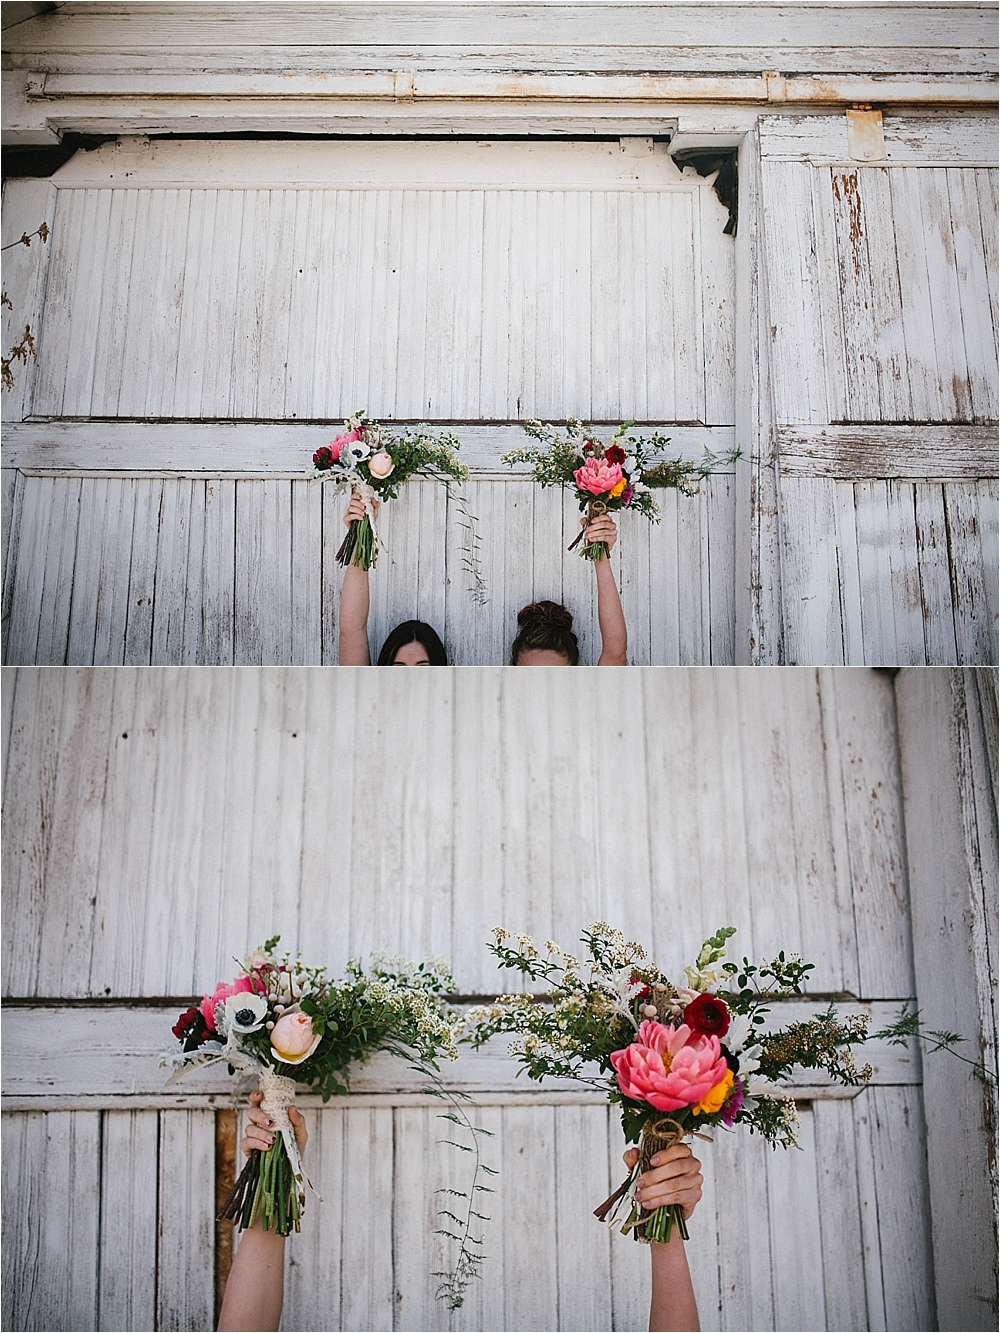 manzanita photo by rebecca caridad wedding lifestlye photography floral design calligraphy_1263.jpg